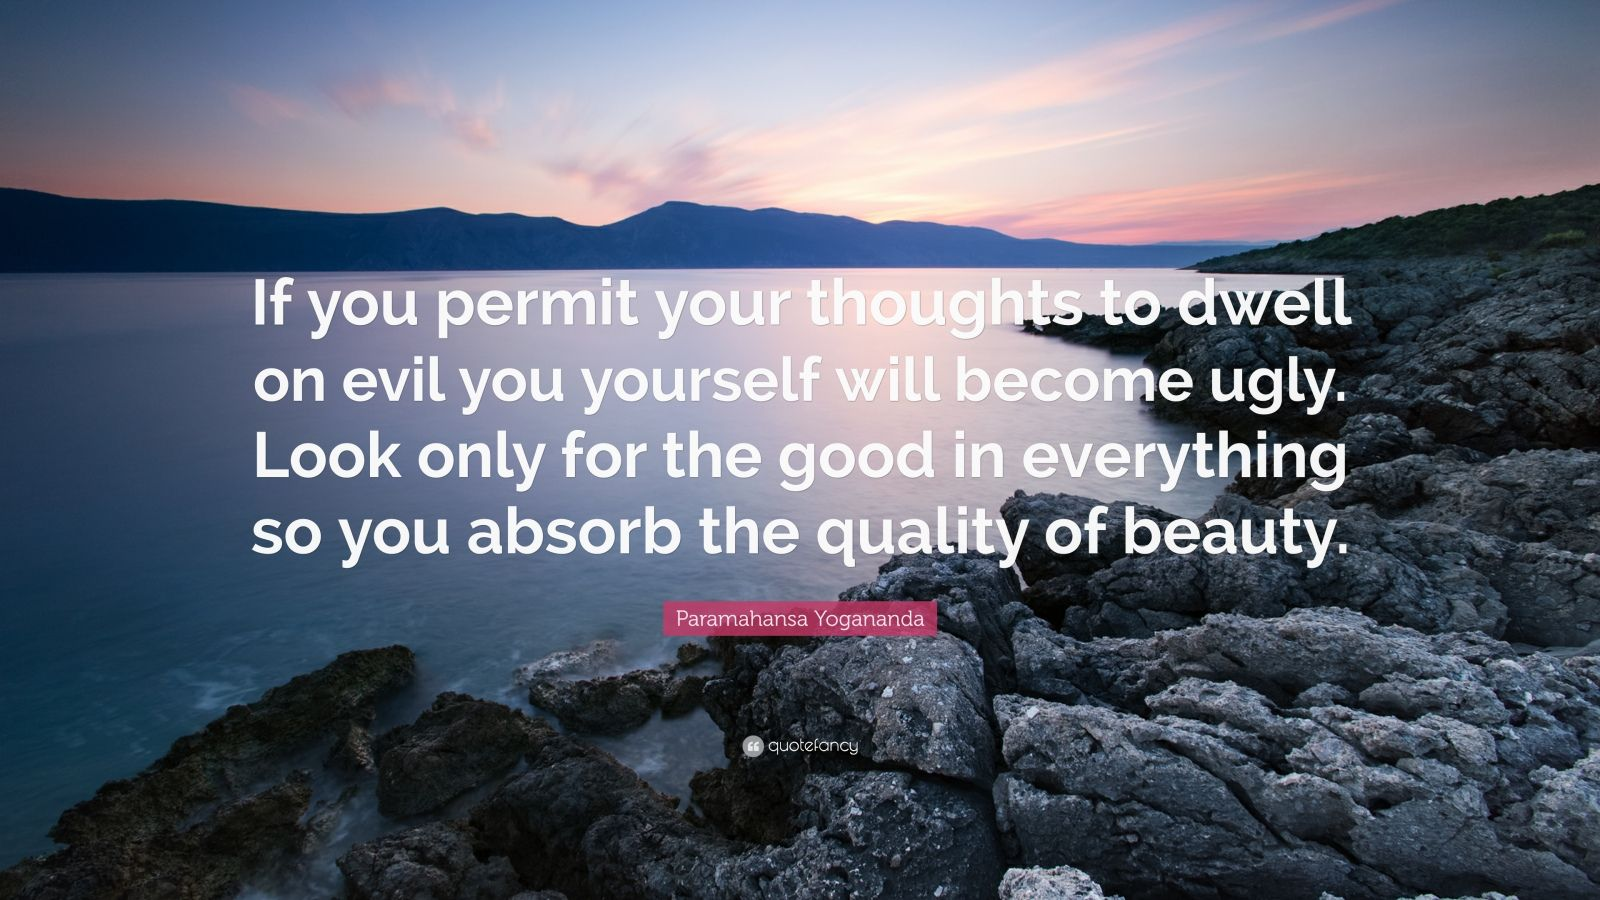 "Paramahansa Yogananda Quote: ""If you permit your thoughts to dwell on evil you yourself will become ugly. Look only for the good in everything so you absorb the quality of beauty."""